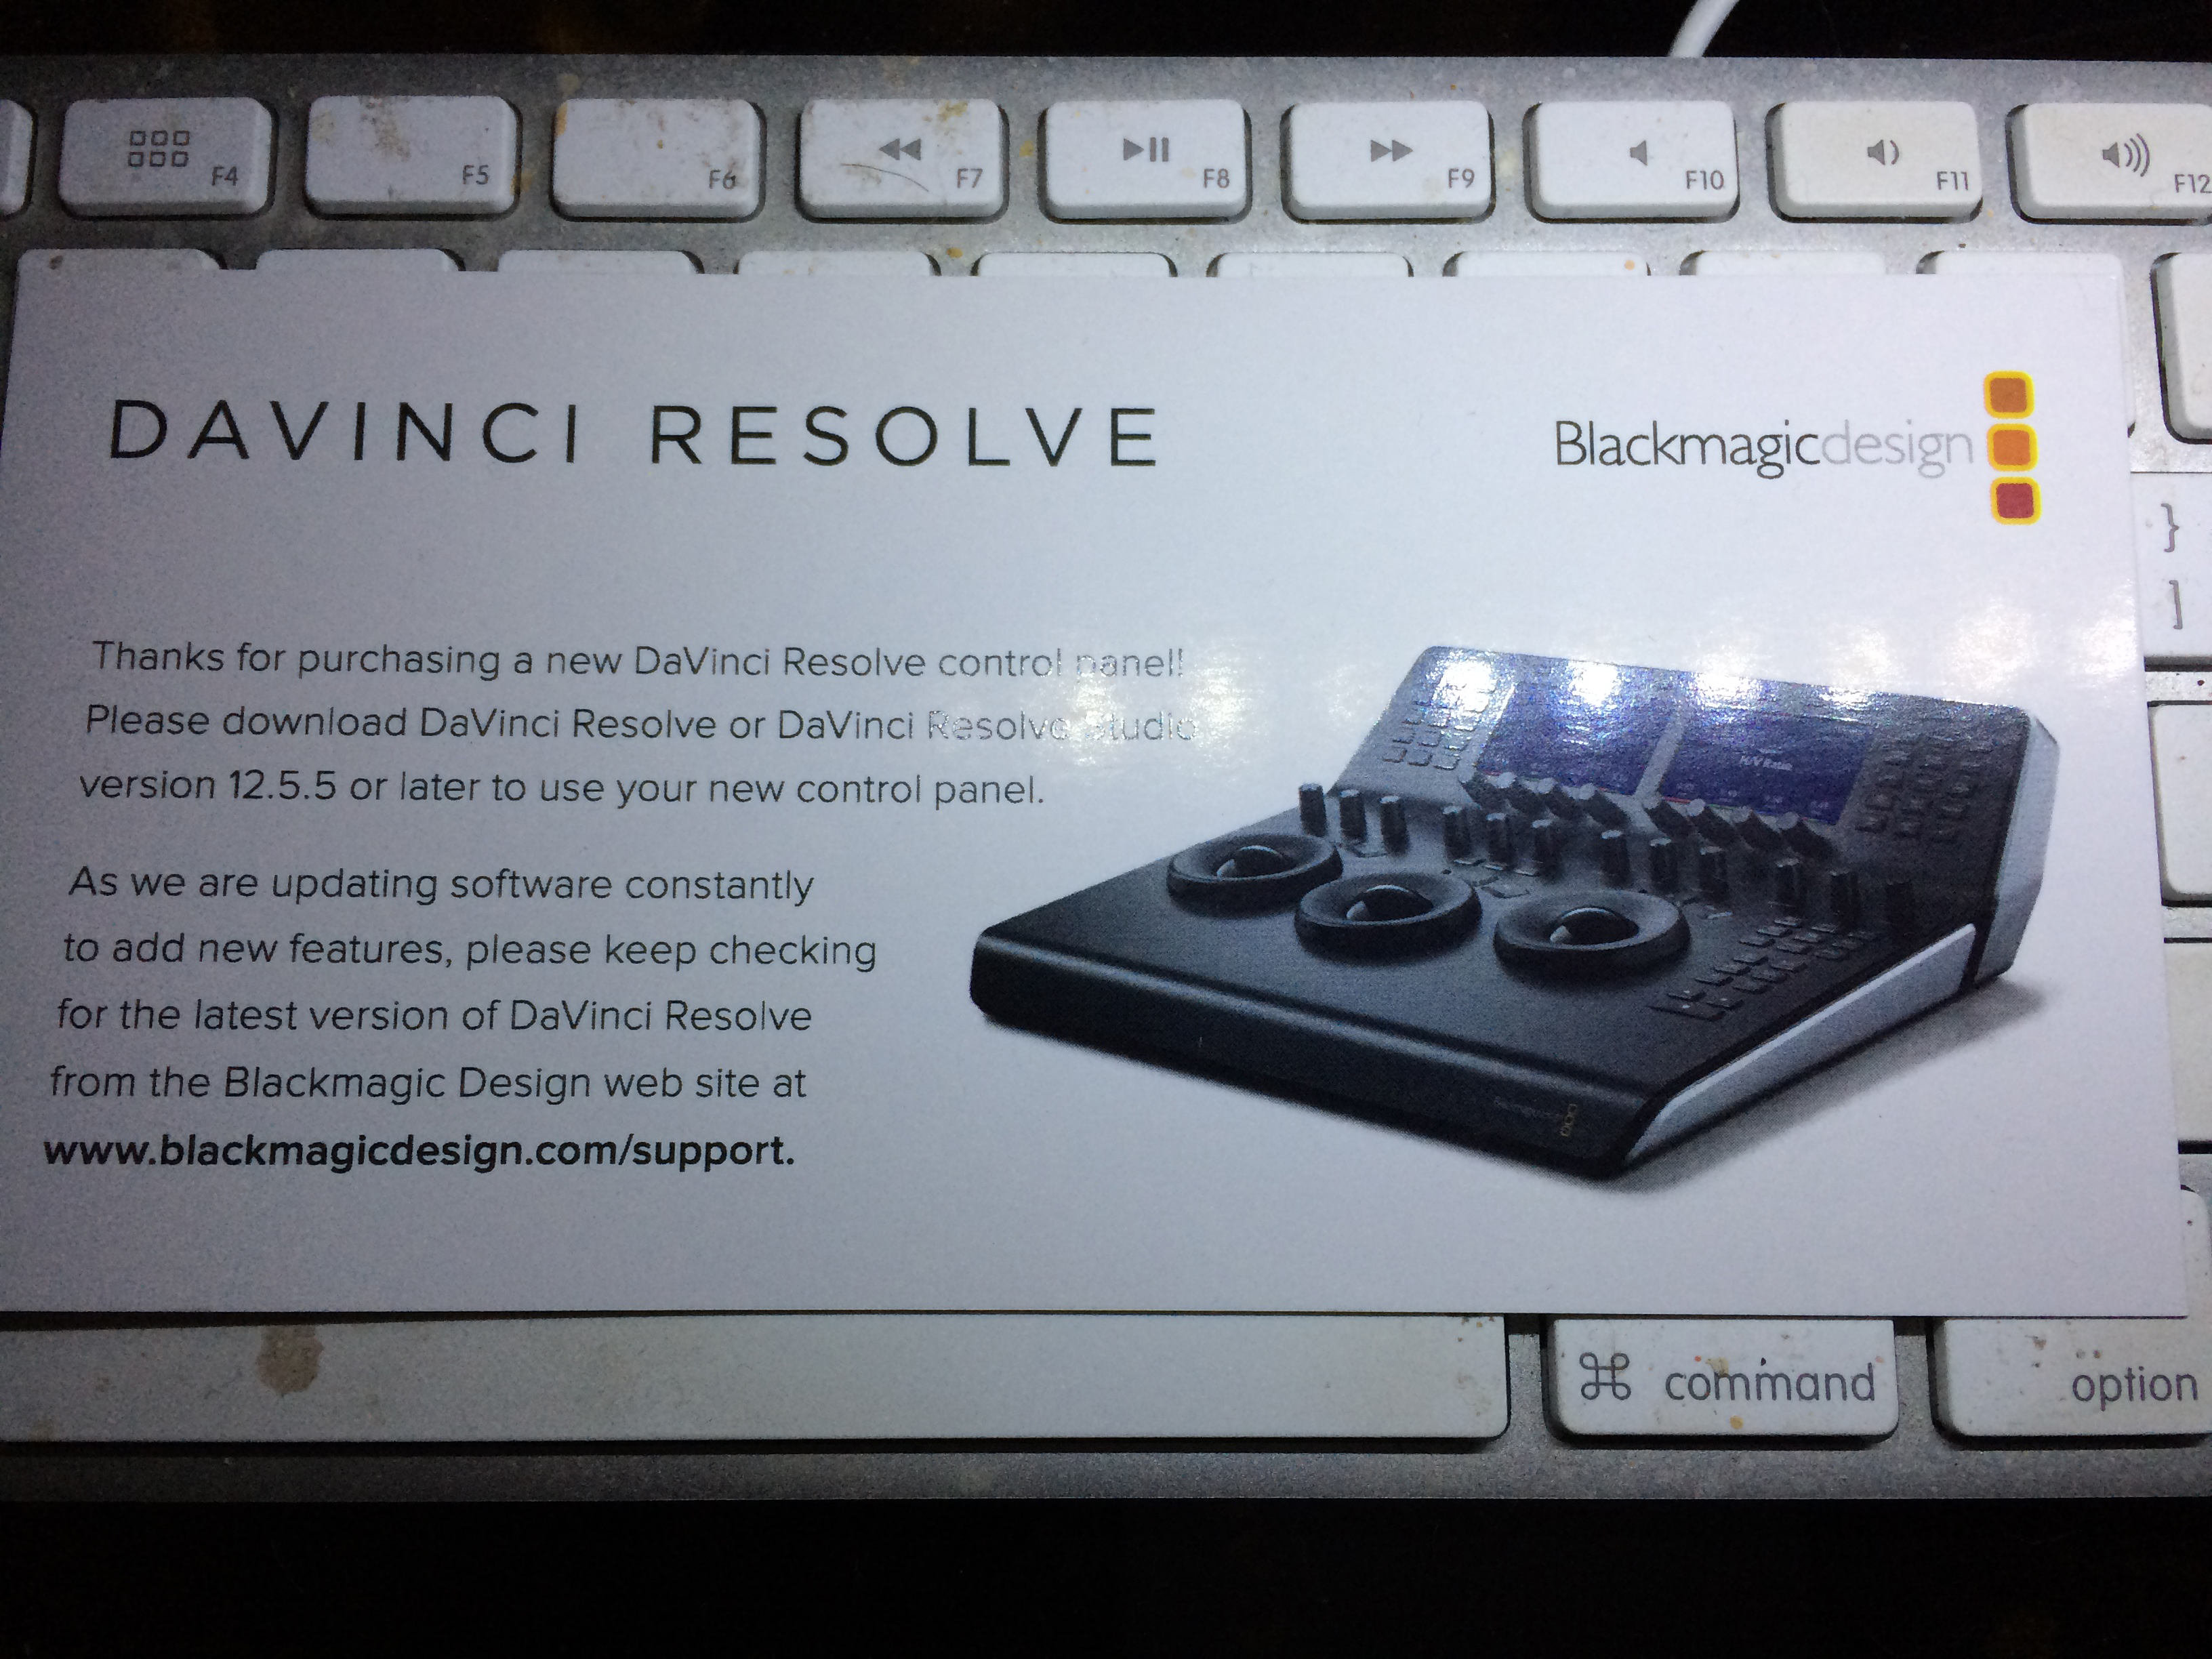 Blackmagic Forum View Topic Question For Those Who Have Bought The Mini Panel